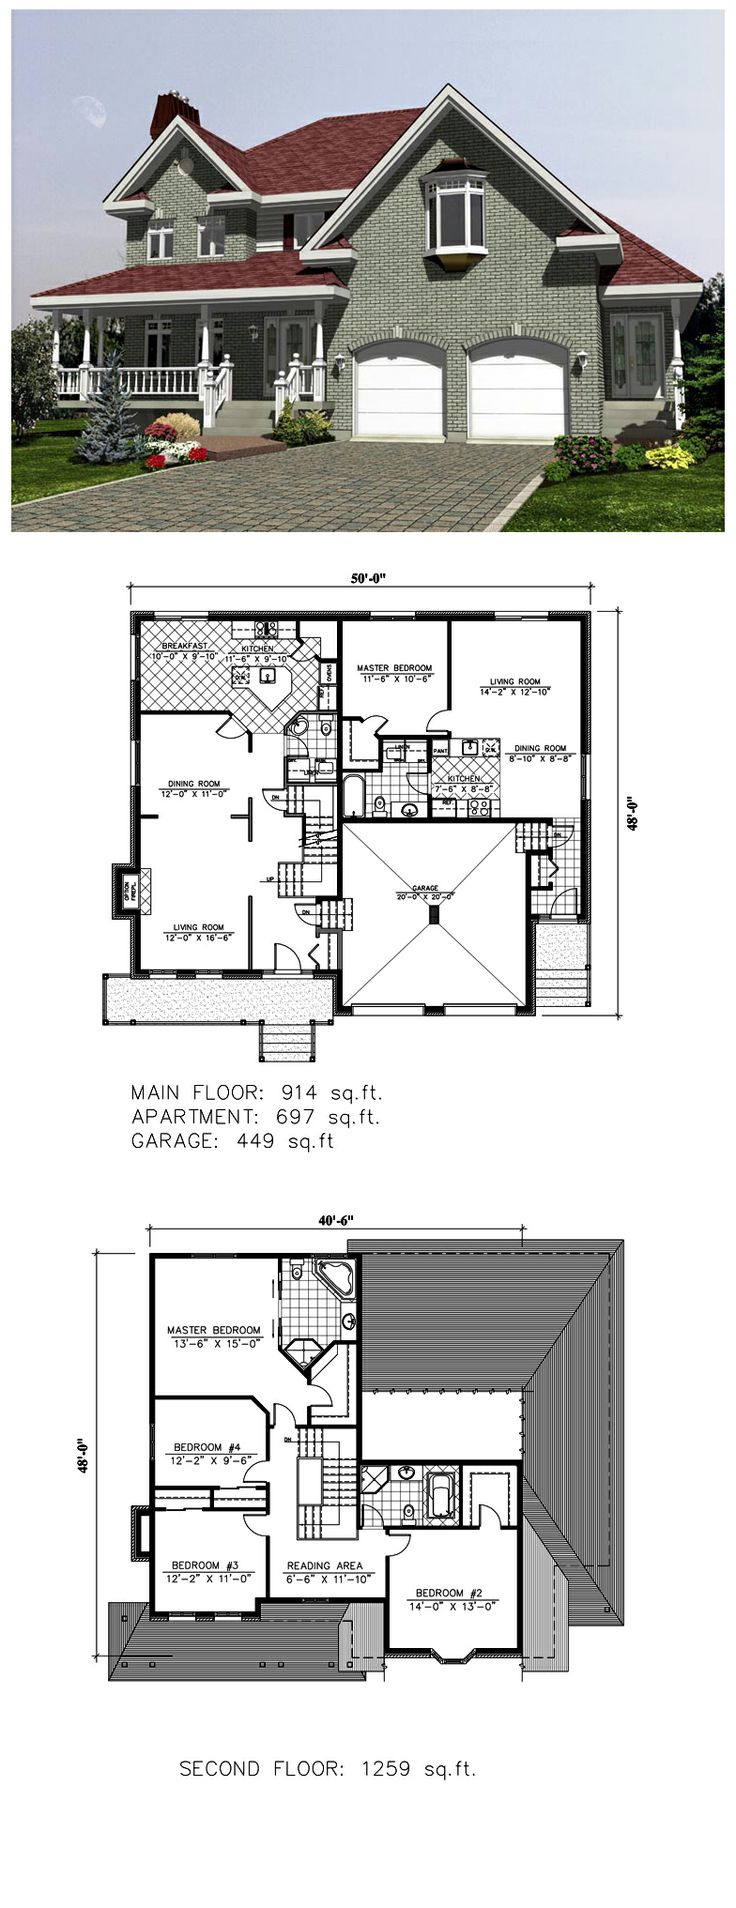 Cool garage apartment plans 9501 28 images 100 garage for Cool garage apartment plans